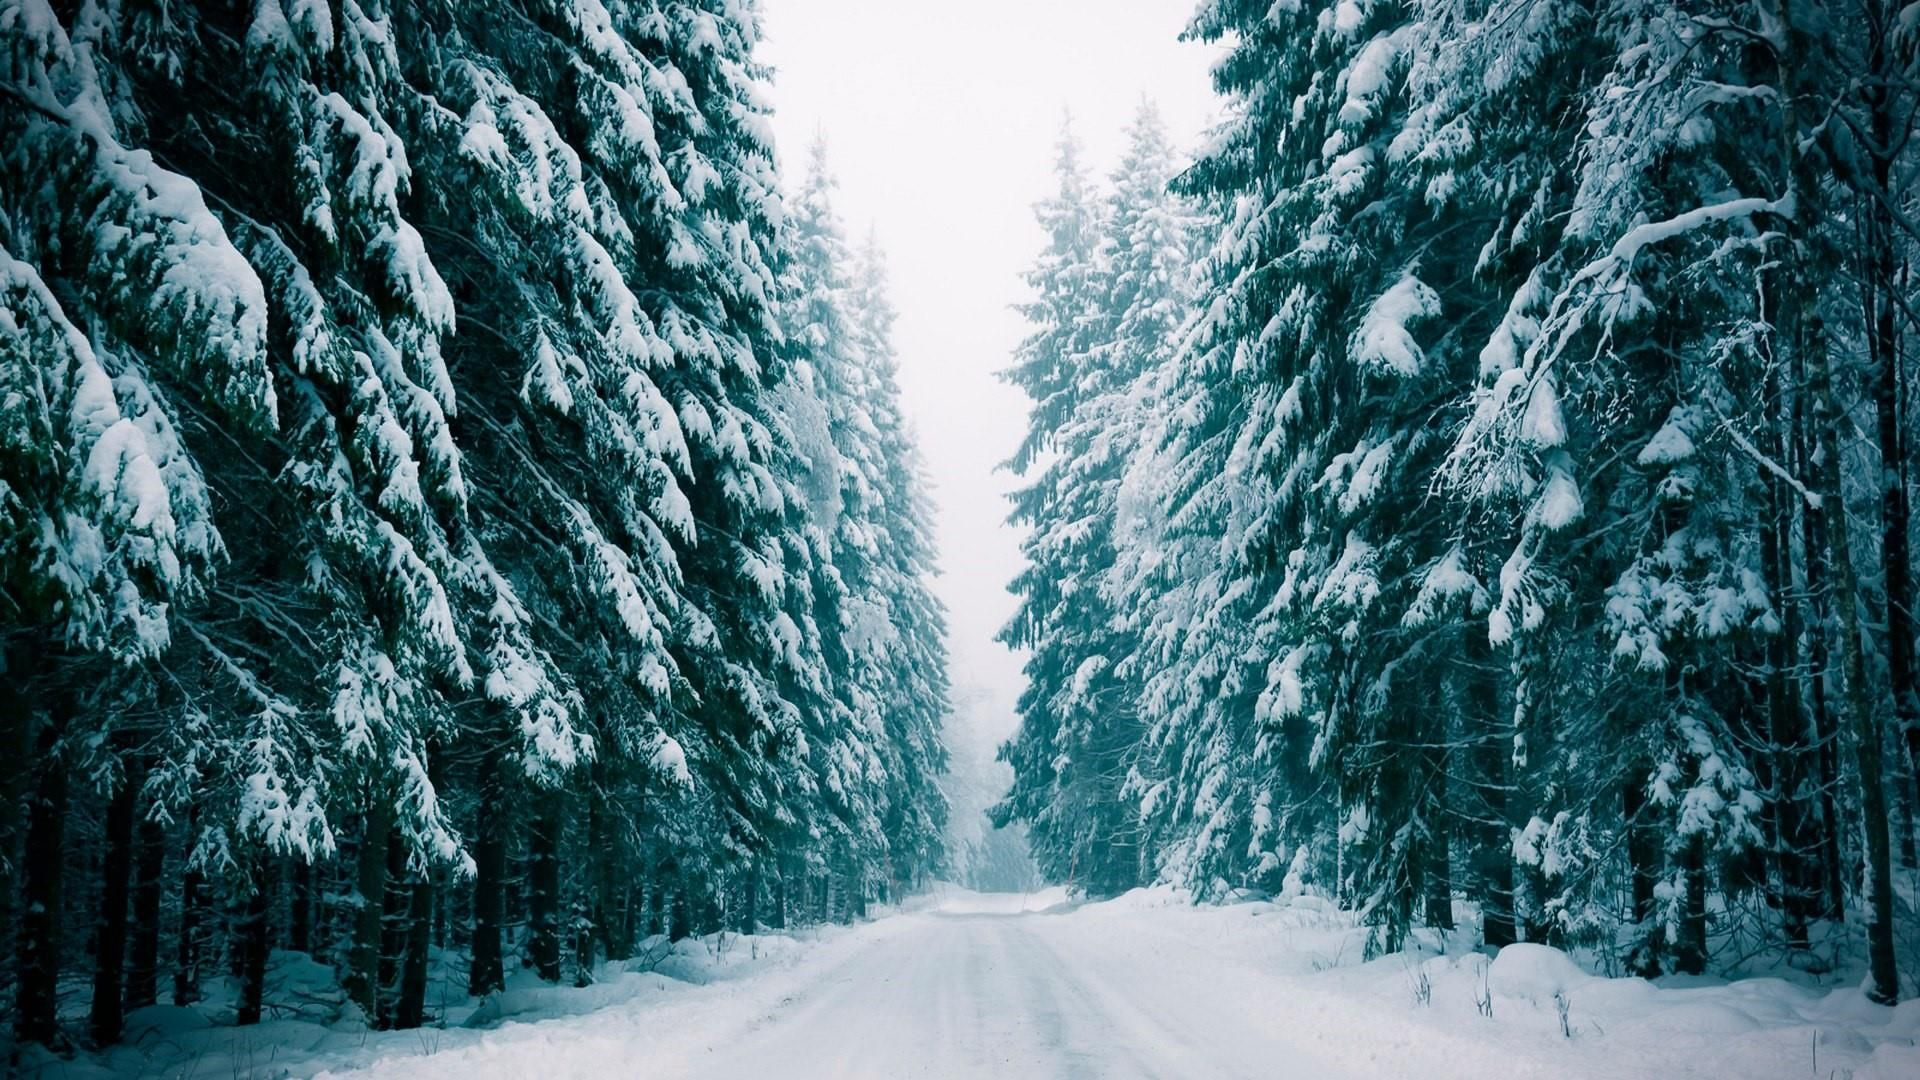 Snowy Forest Wallpaper 474687 In 2019 Snowy Forest